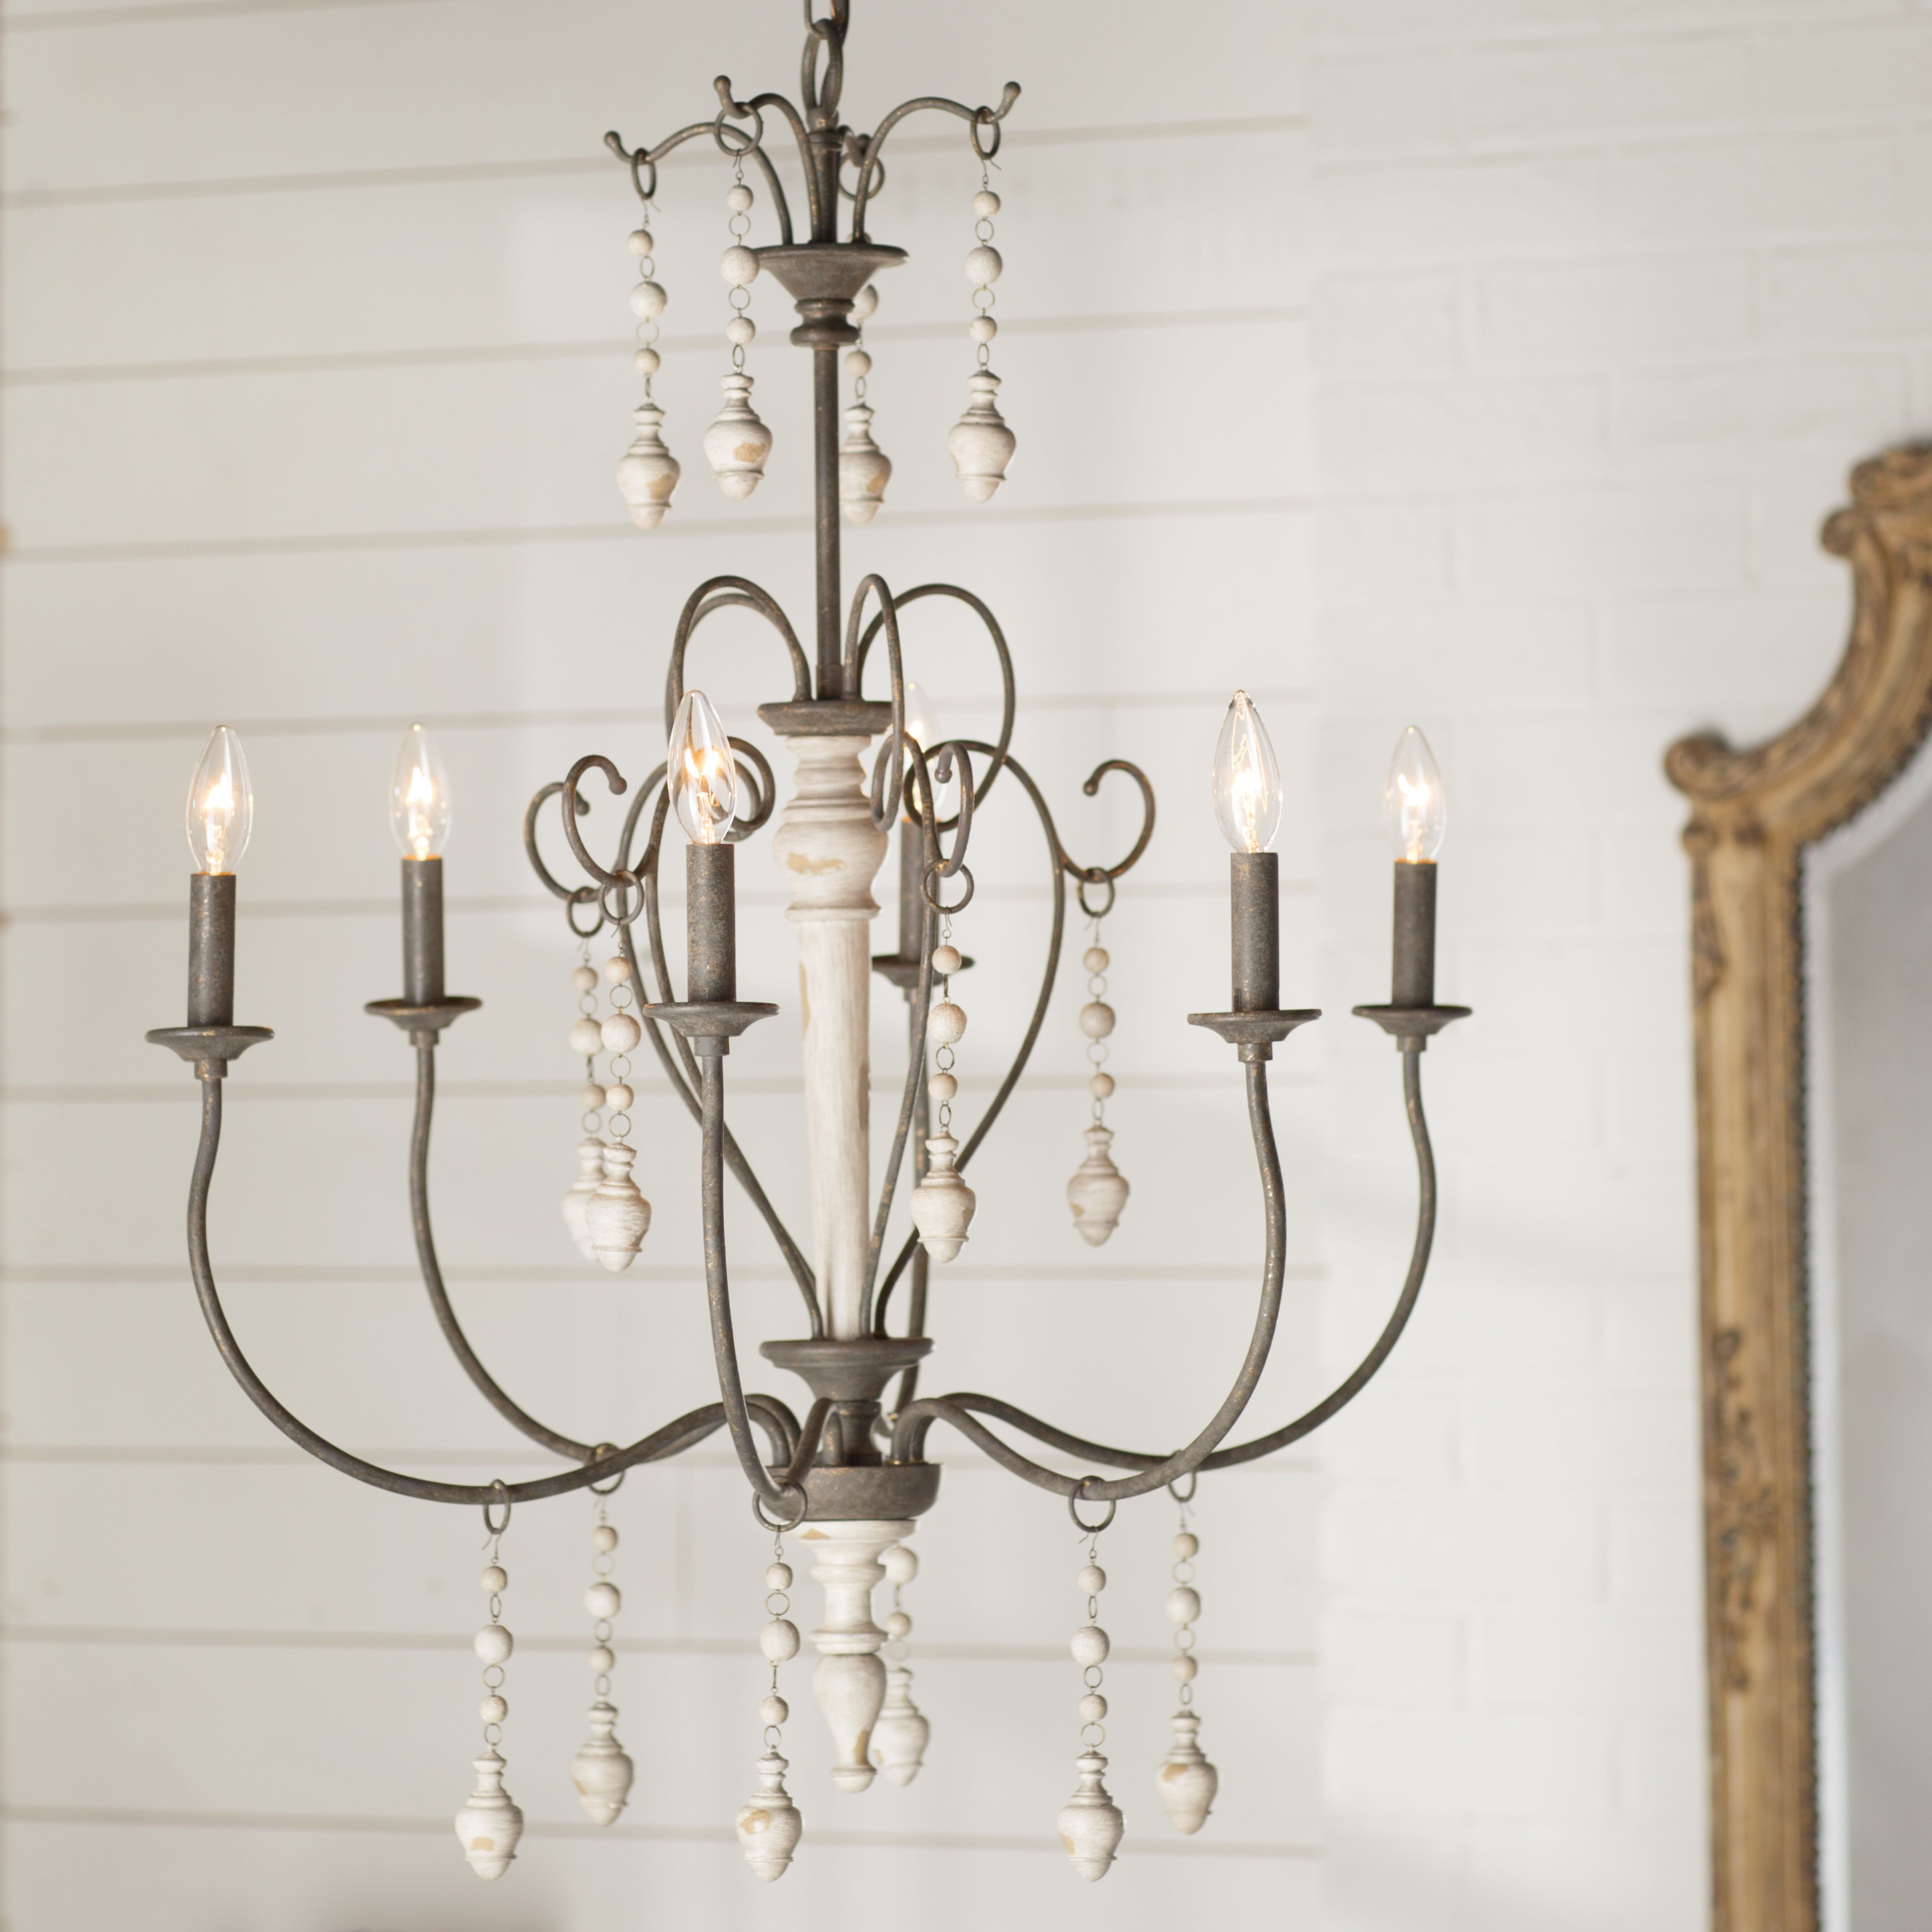 Bouchette Traditional 6 Light Candle Style Chandelier Throughout Newest Corneau 5 Light Chandeliers (View 19 of 25)